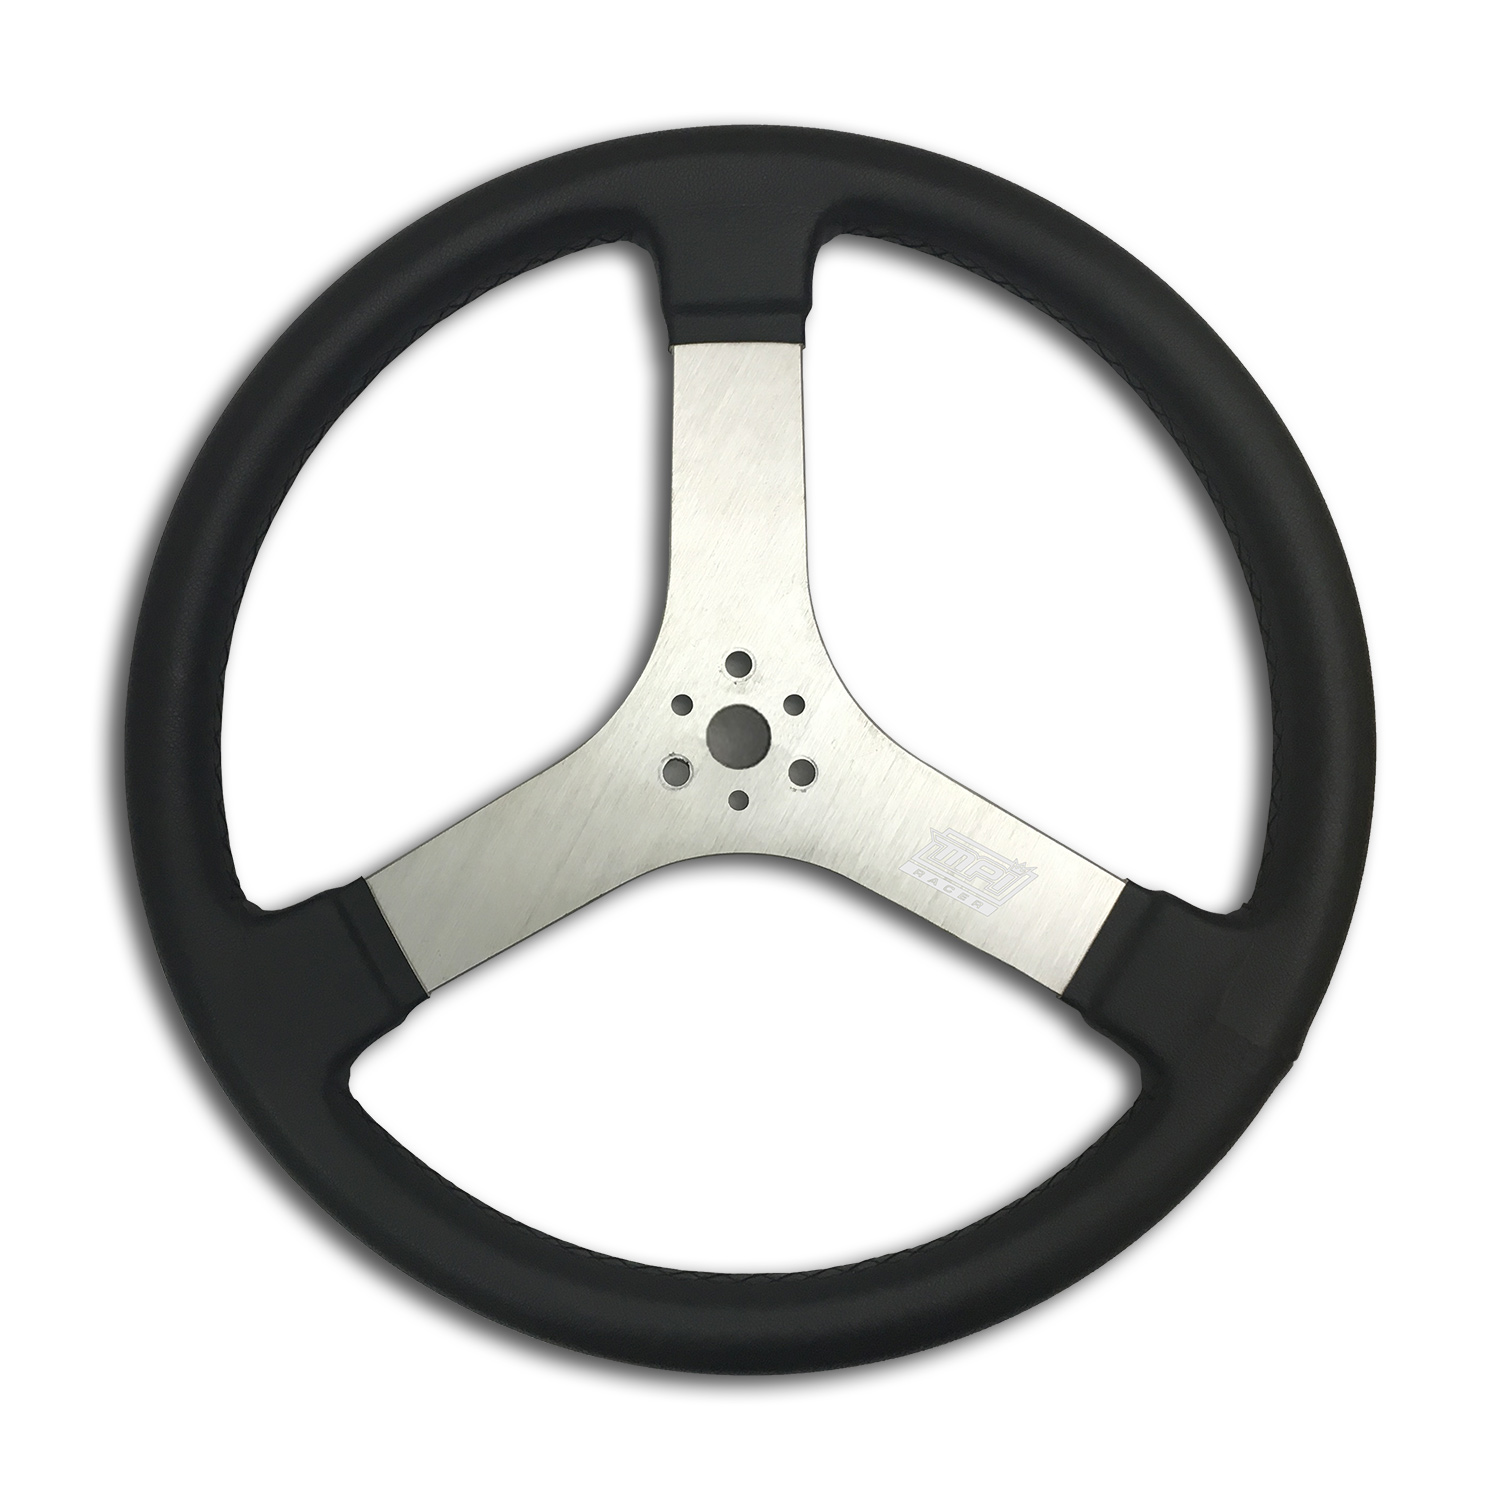 MPI USA MPI-A-CP-MPLM Center Pad For MP and LM Steering Wheel